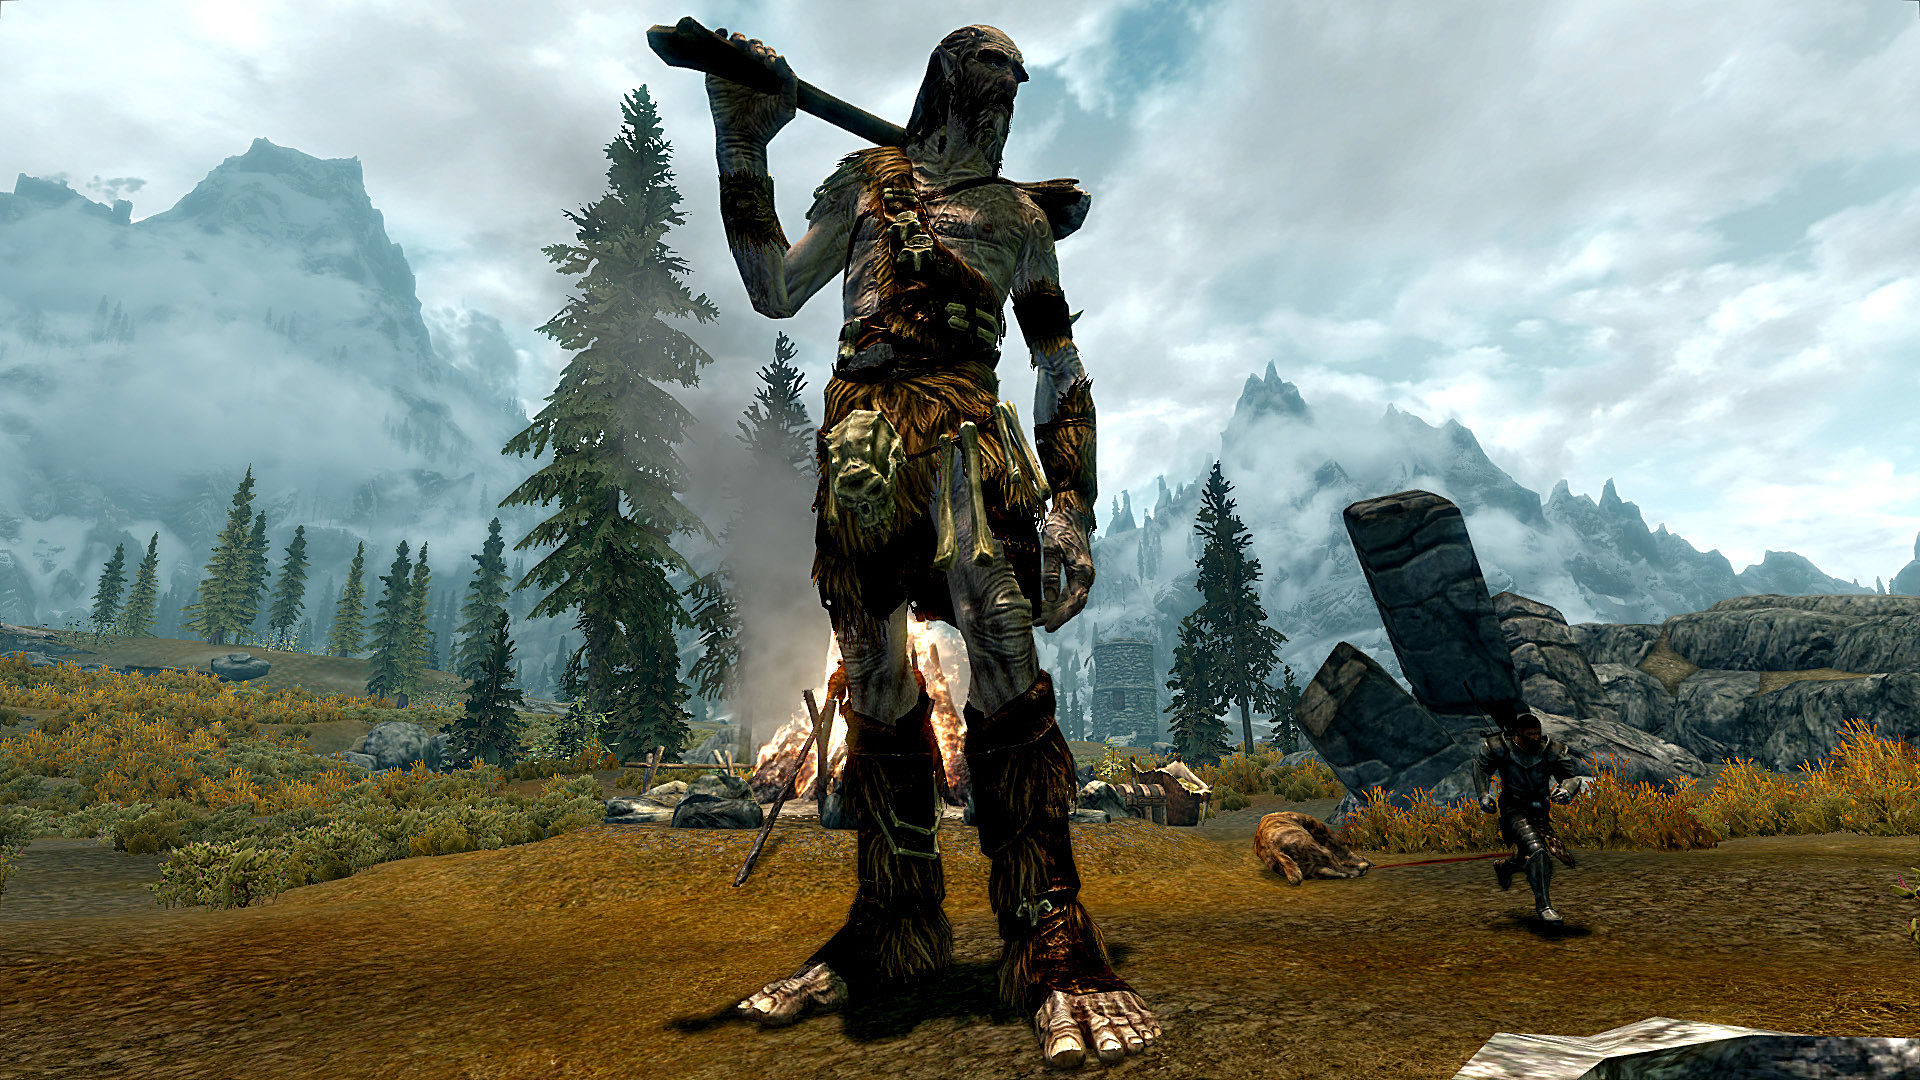 The 10 Best Skyrim Overhaul Mods (Even for Skyrim Remastered